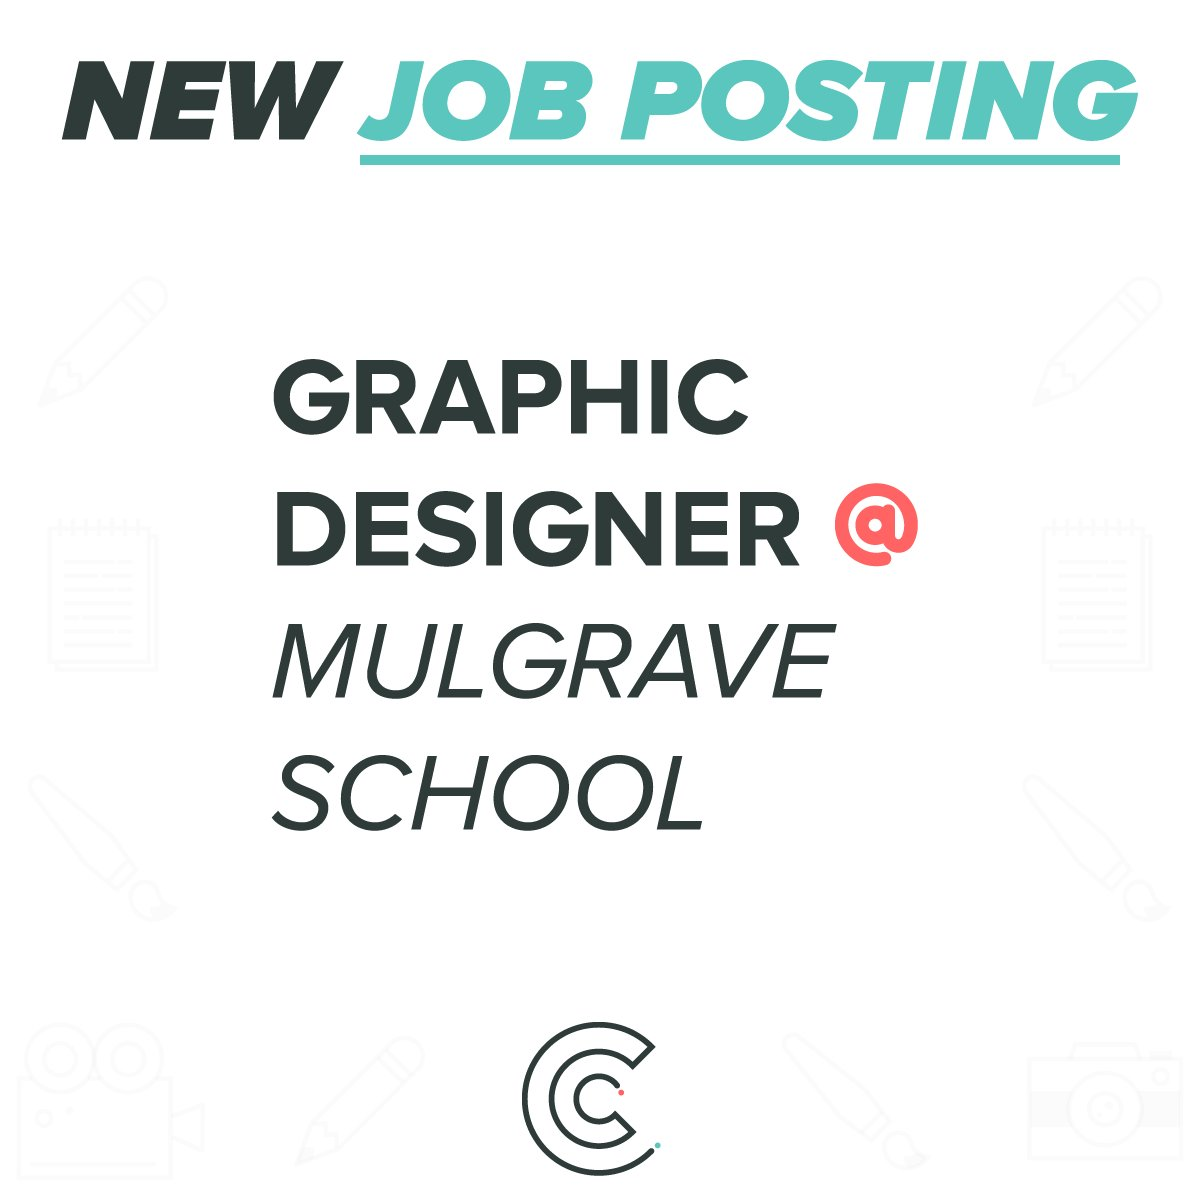 Home Based Graphic Design Jobs Stunning Graphic Designer Jobs From ...